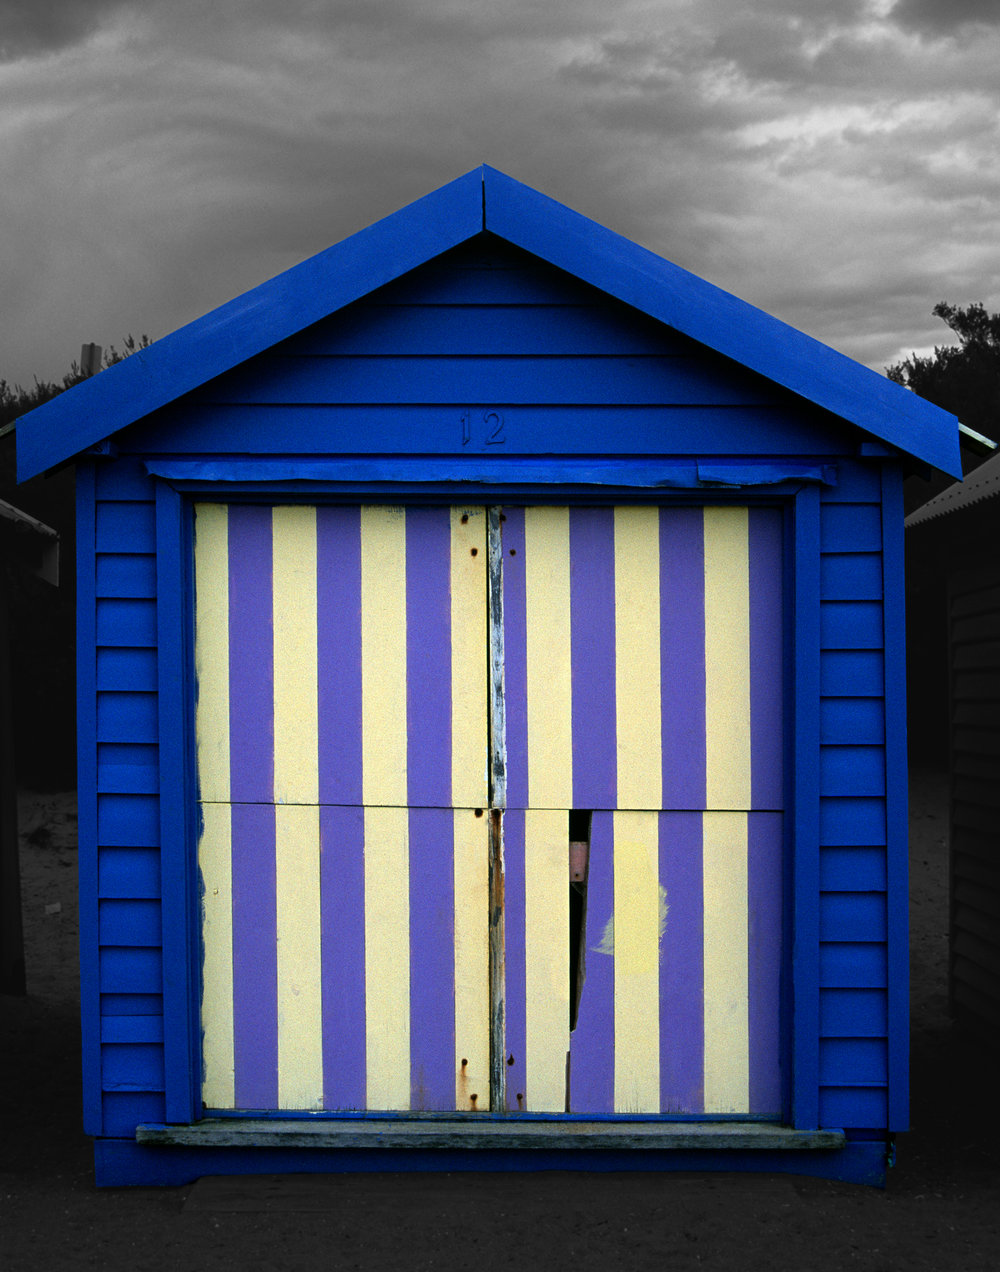 Judy Gelles,  Beach Box No. 12 , 2003  Digital pigment print, 8 x 10 in, edition of 20; 11 x 14 in, edition of 25; 16 x 20 in, edition of 25   Inquire